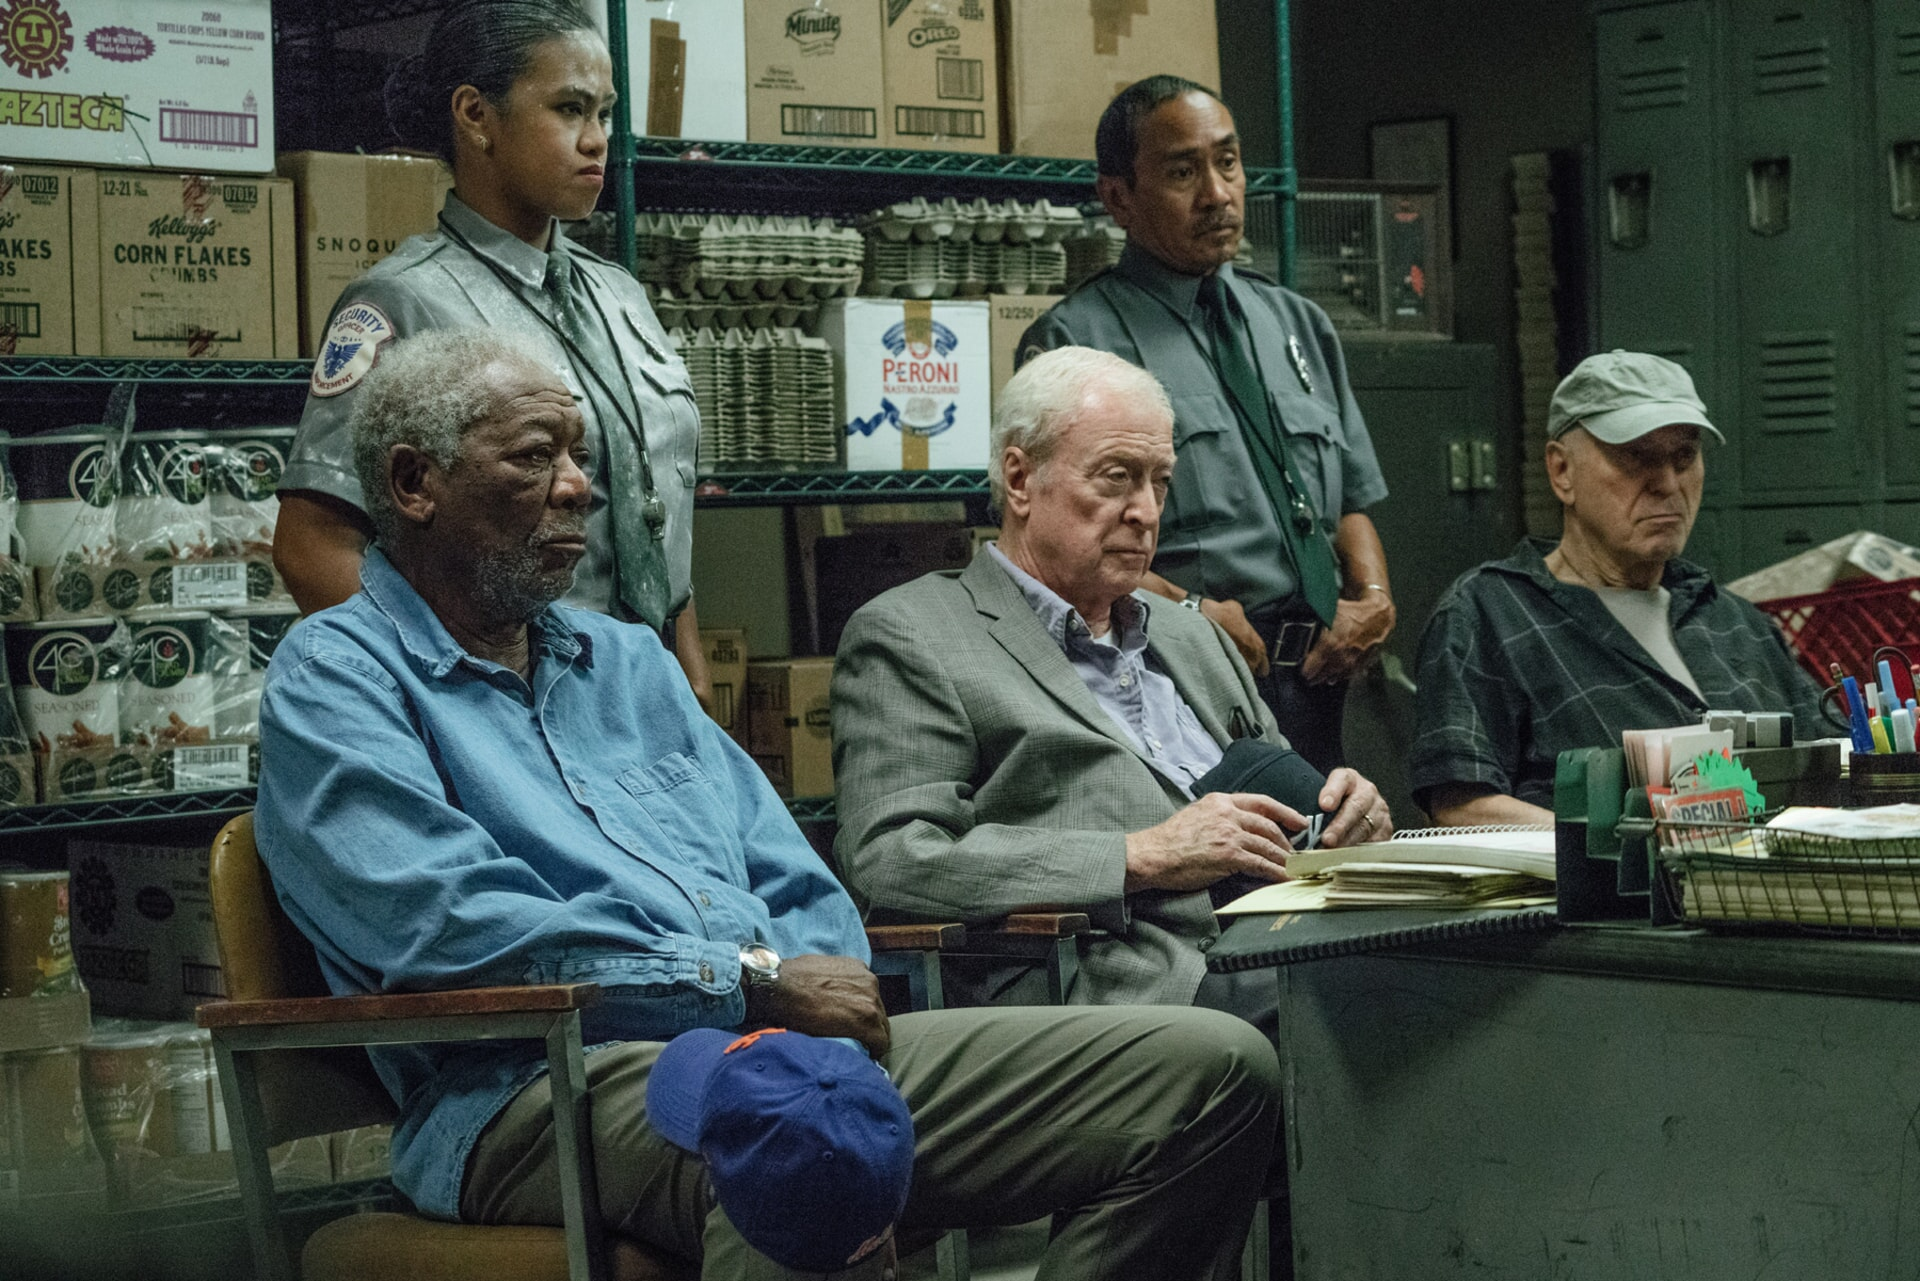 """MORGAN FREEMAN as Willie Davis, MICHAEL CAINE as Joe Harding and ALAN ARKIN as Albert Garner in the New Line Cinema and Village Roadshow comedy """"GOING IN STYLE,"""" a Warner Bros. Pictures release."""